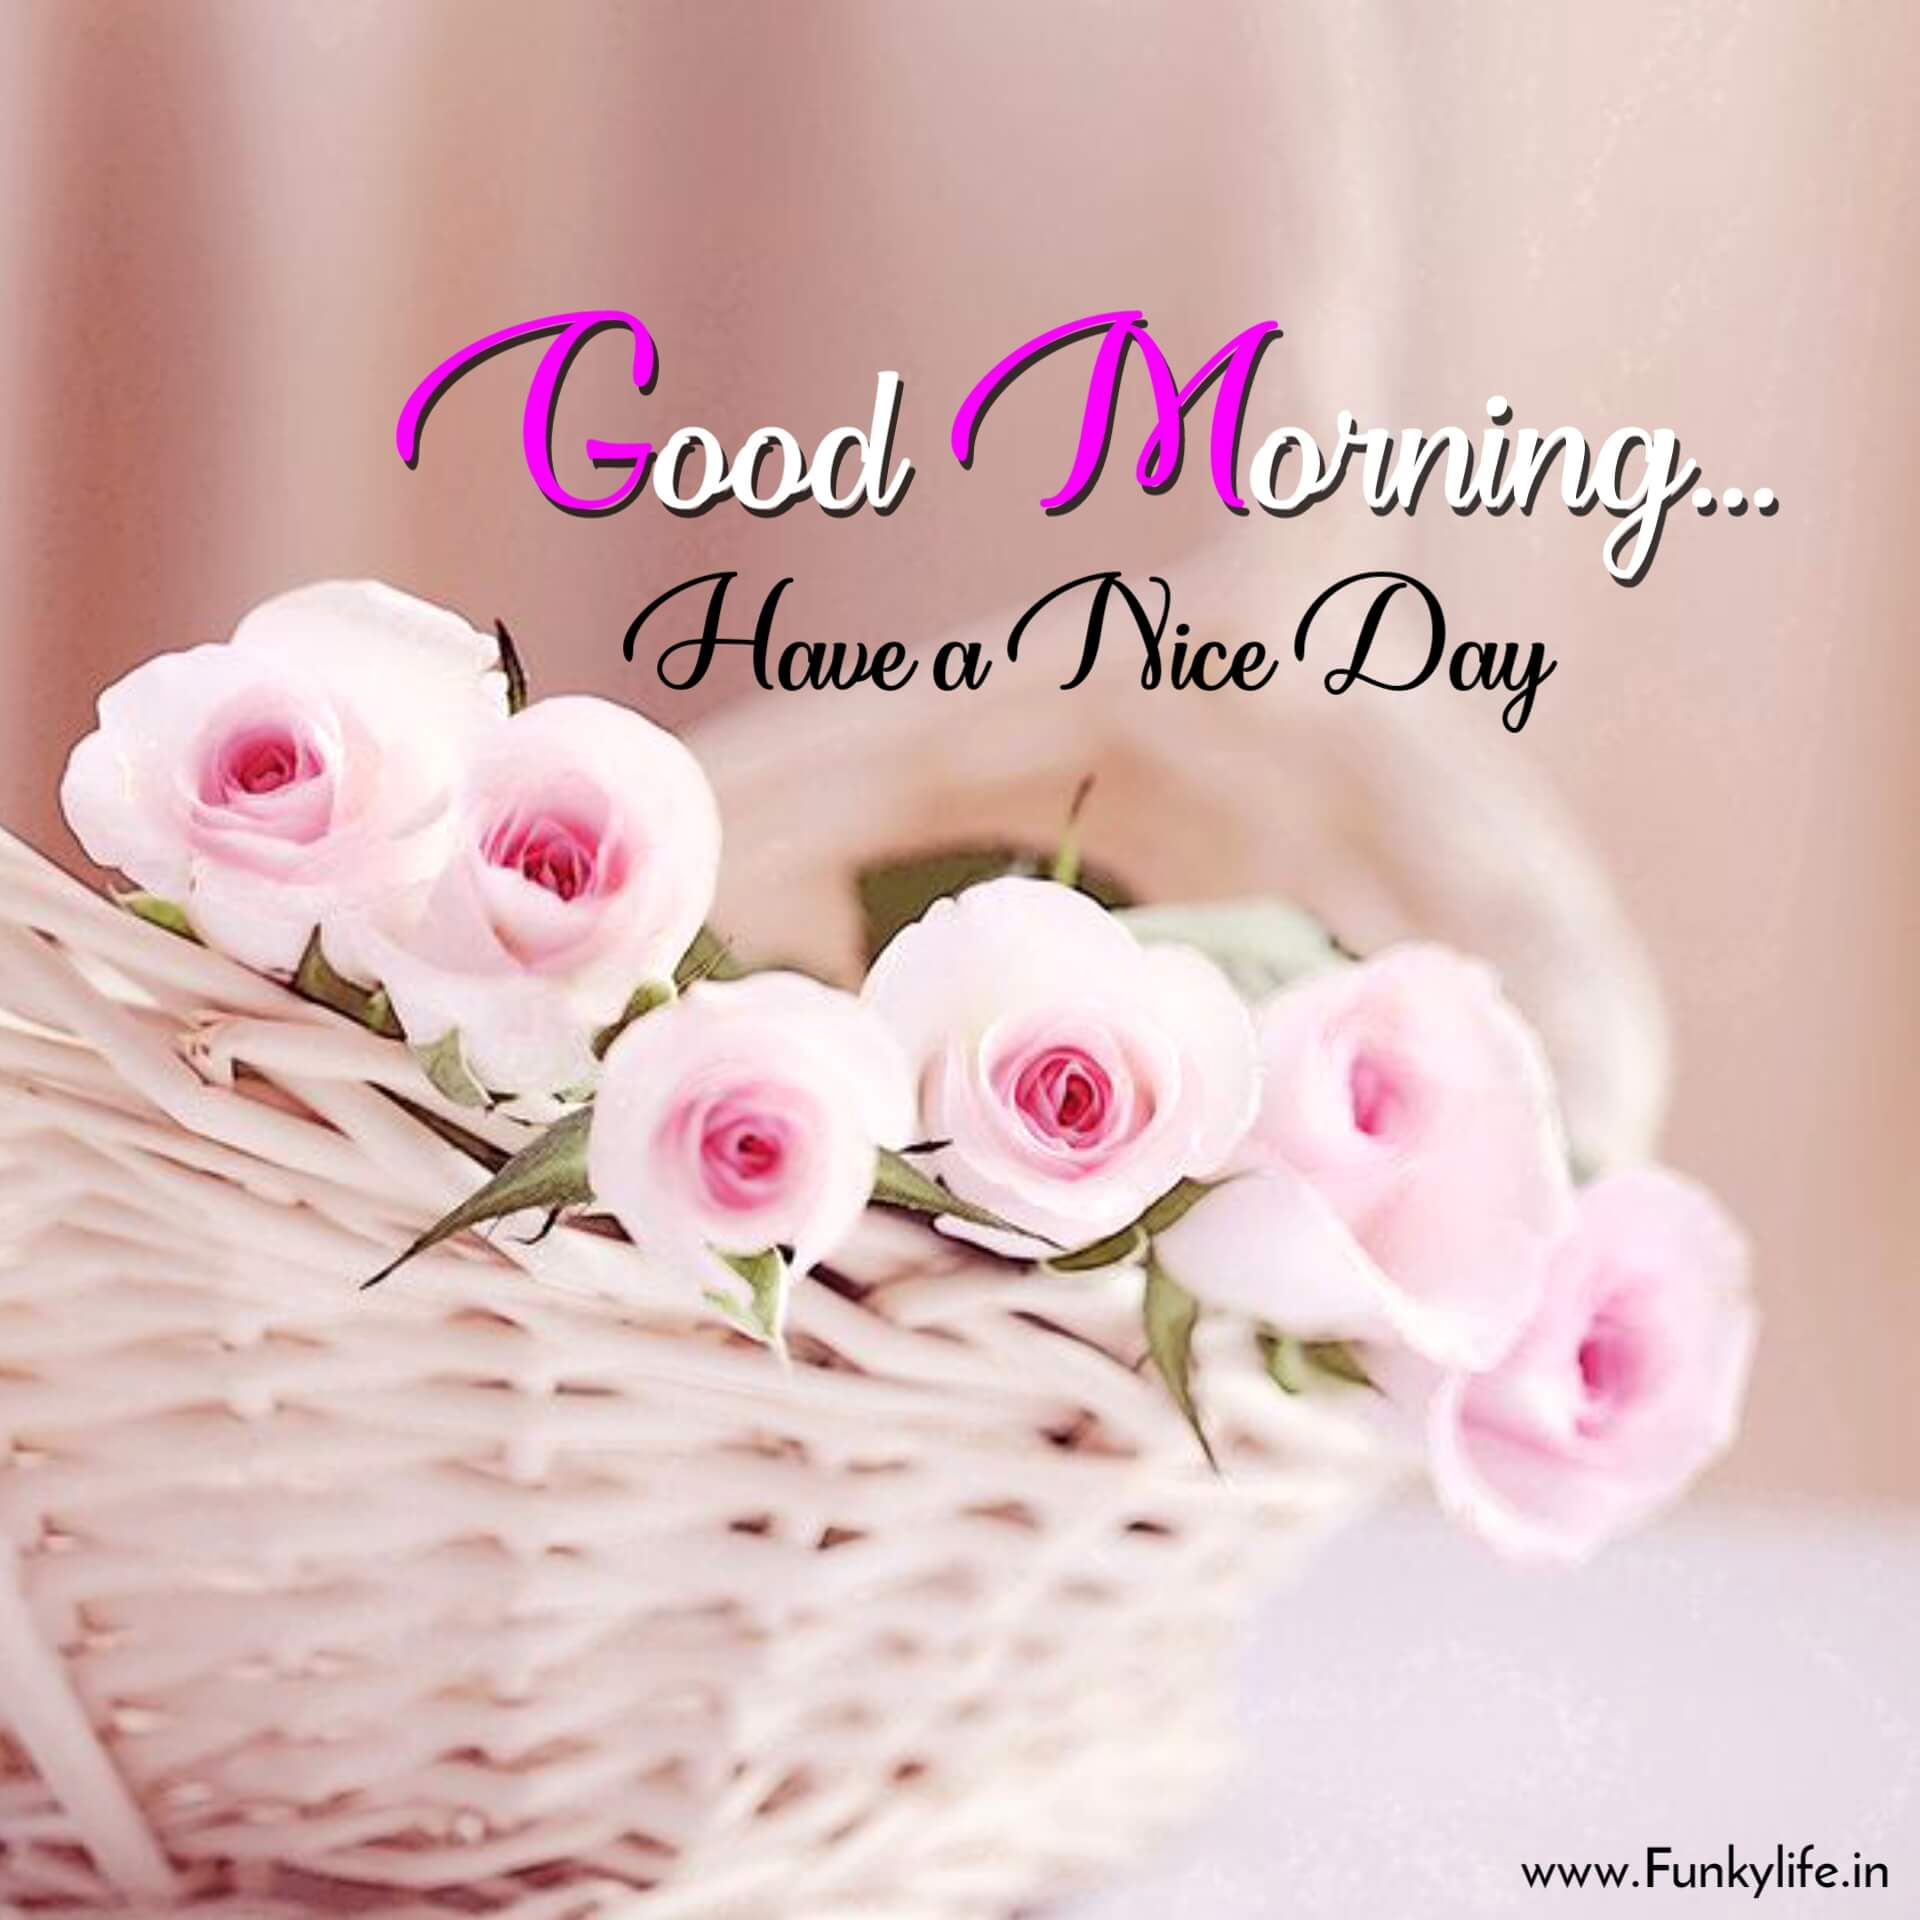 Cute Flower Morning Wish Pic